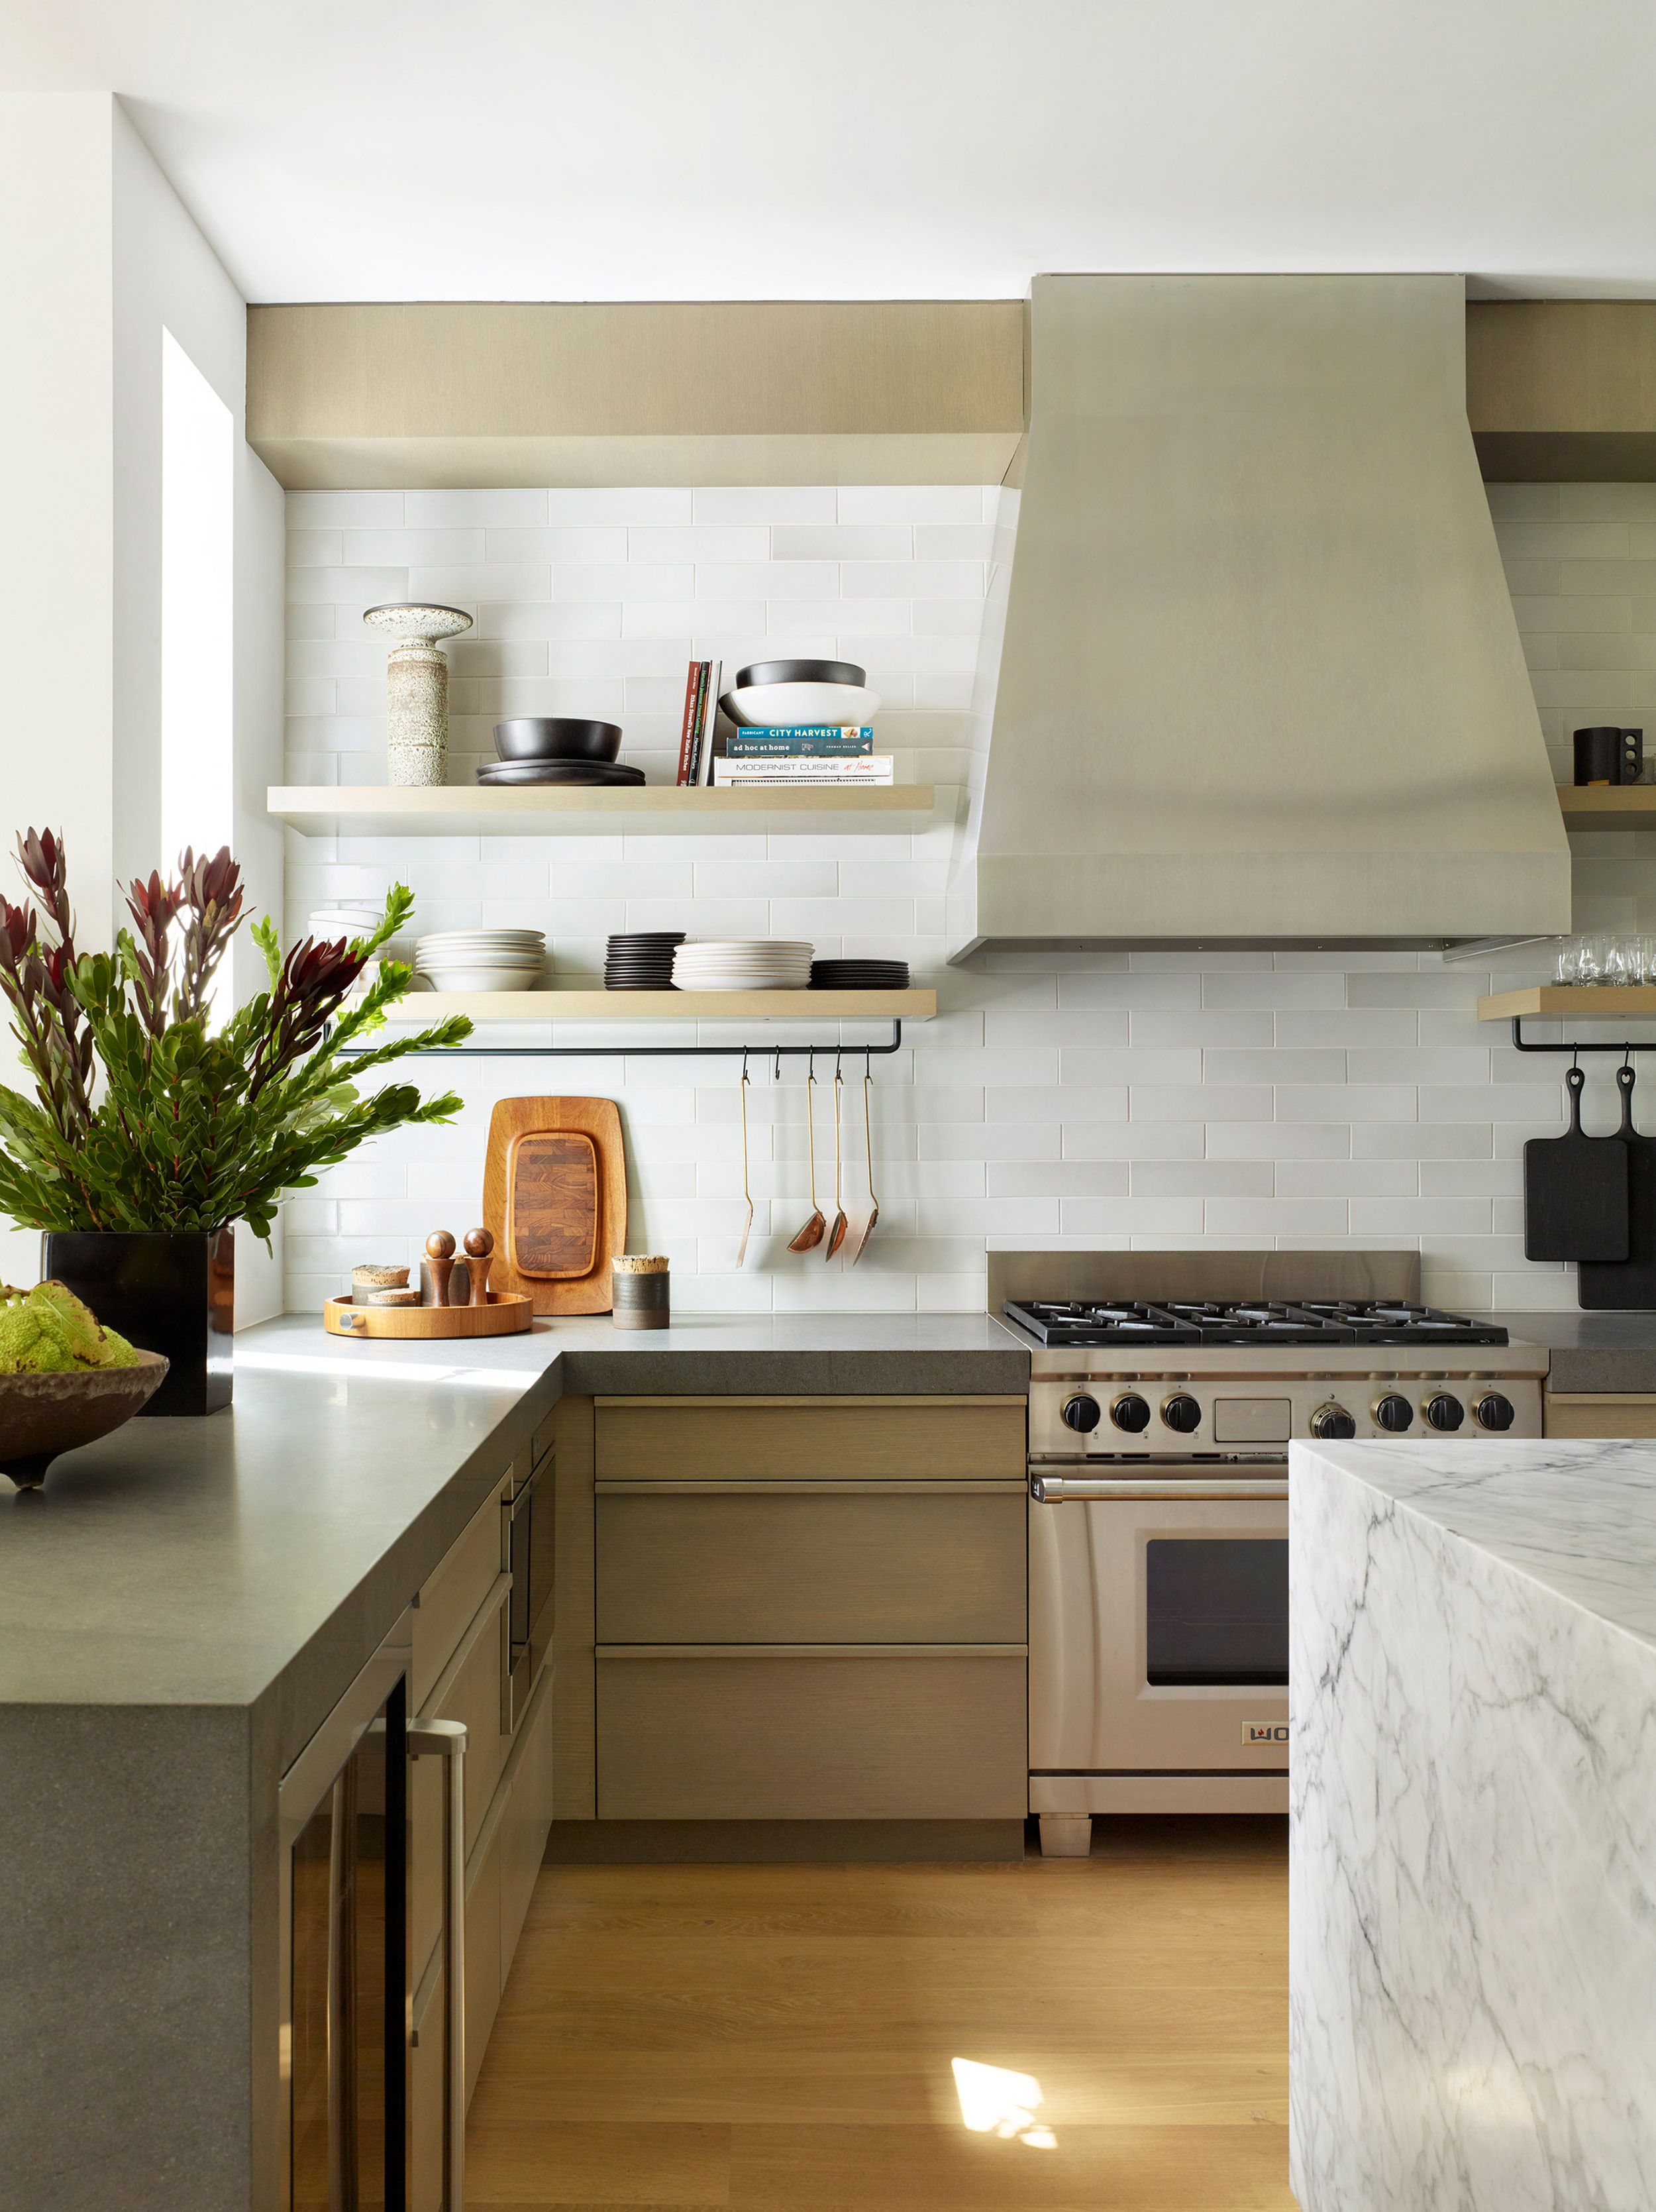 5 New Kitchen Trends We Re Seeing And Loving And Some We Re Doing Right Now Emily Henderson Kitchen Trends Contemporary Kitchen Kitchen Renovation